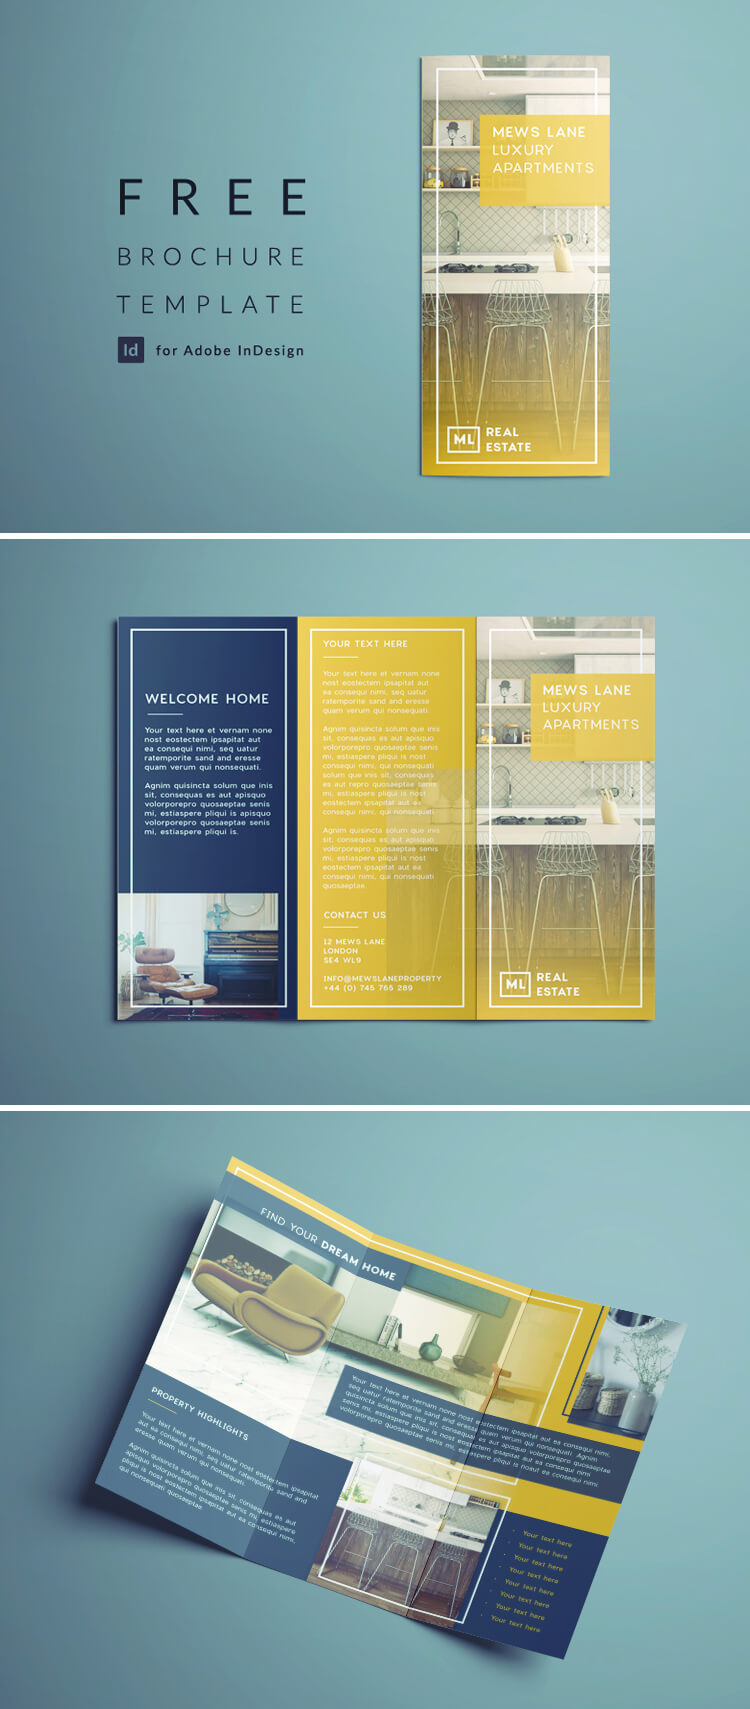 Tri fold brochure free indesign template for Brochure template indesign free download